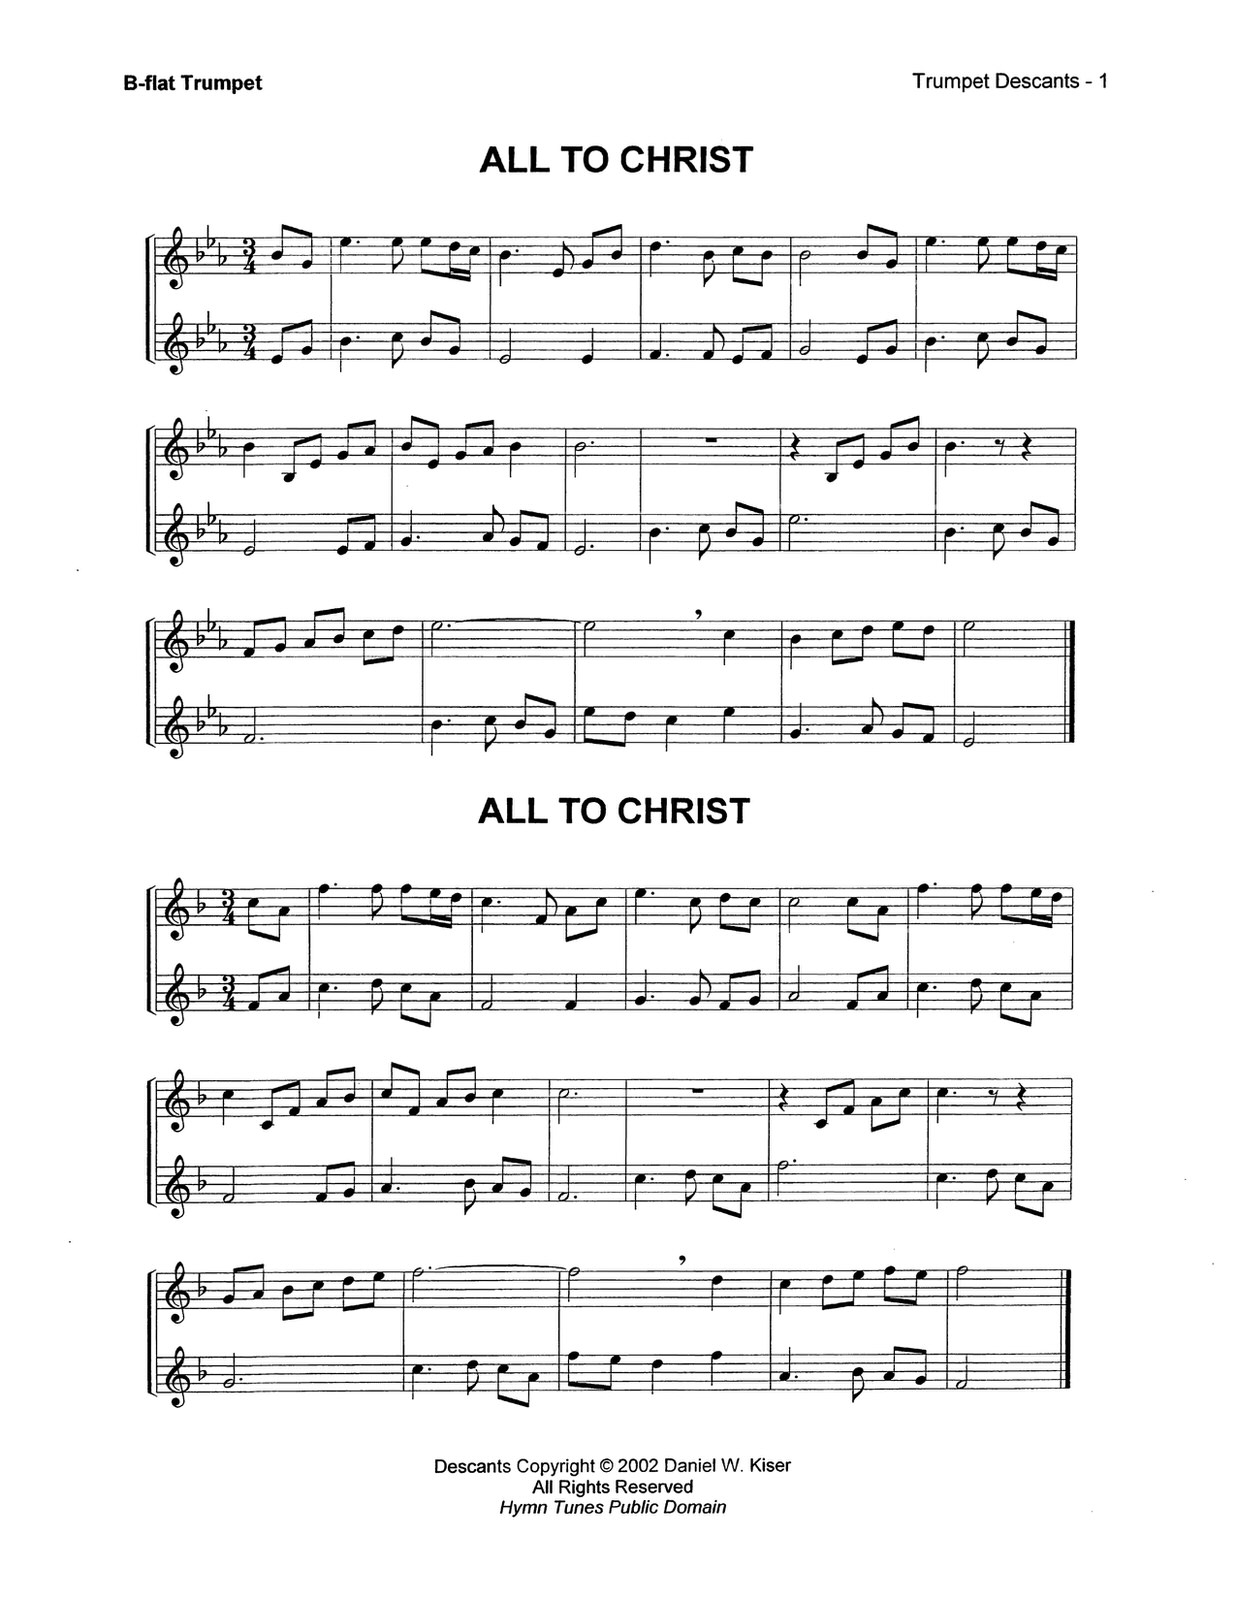 Kiser, Trumpet Descants for Selected Hymns 3